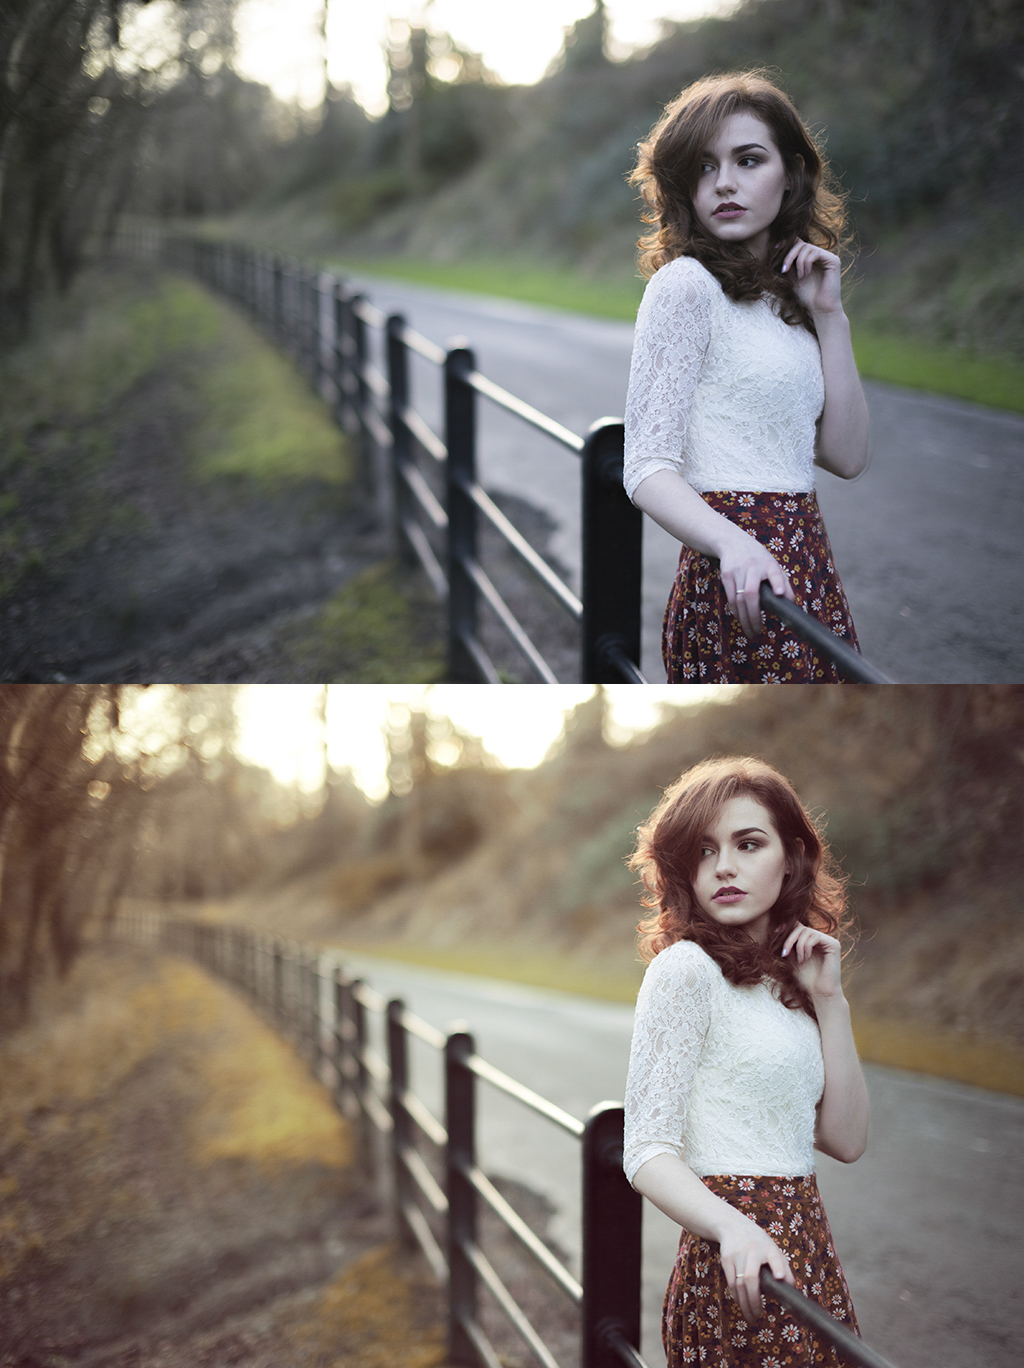 before-and-after-editing